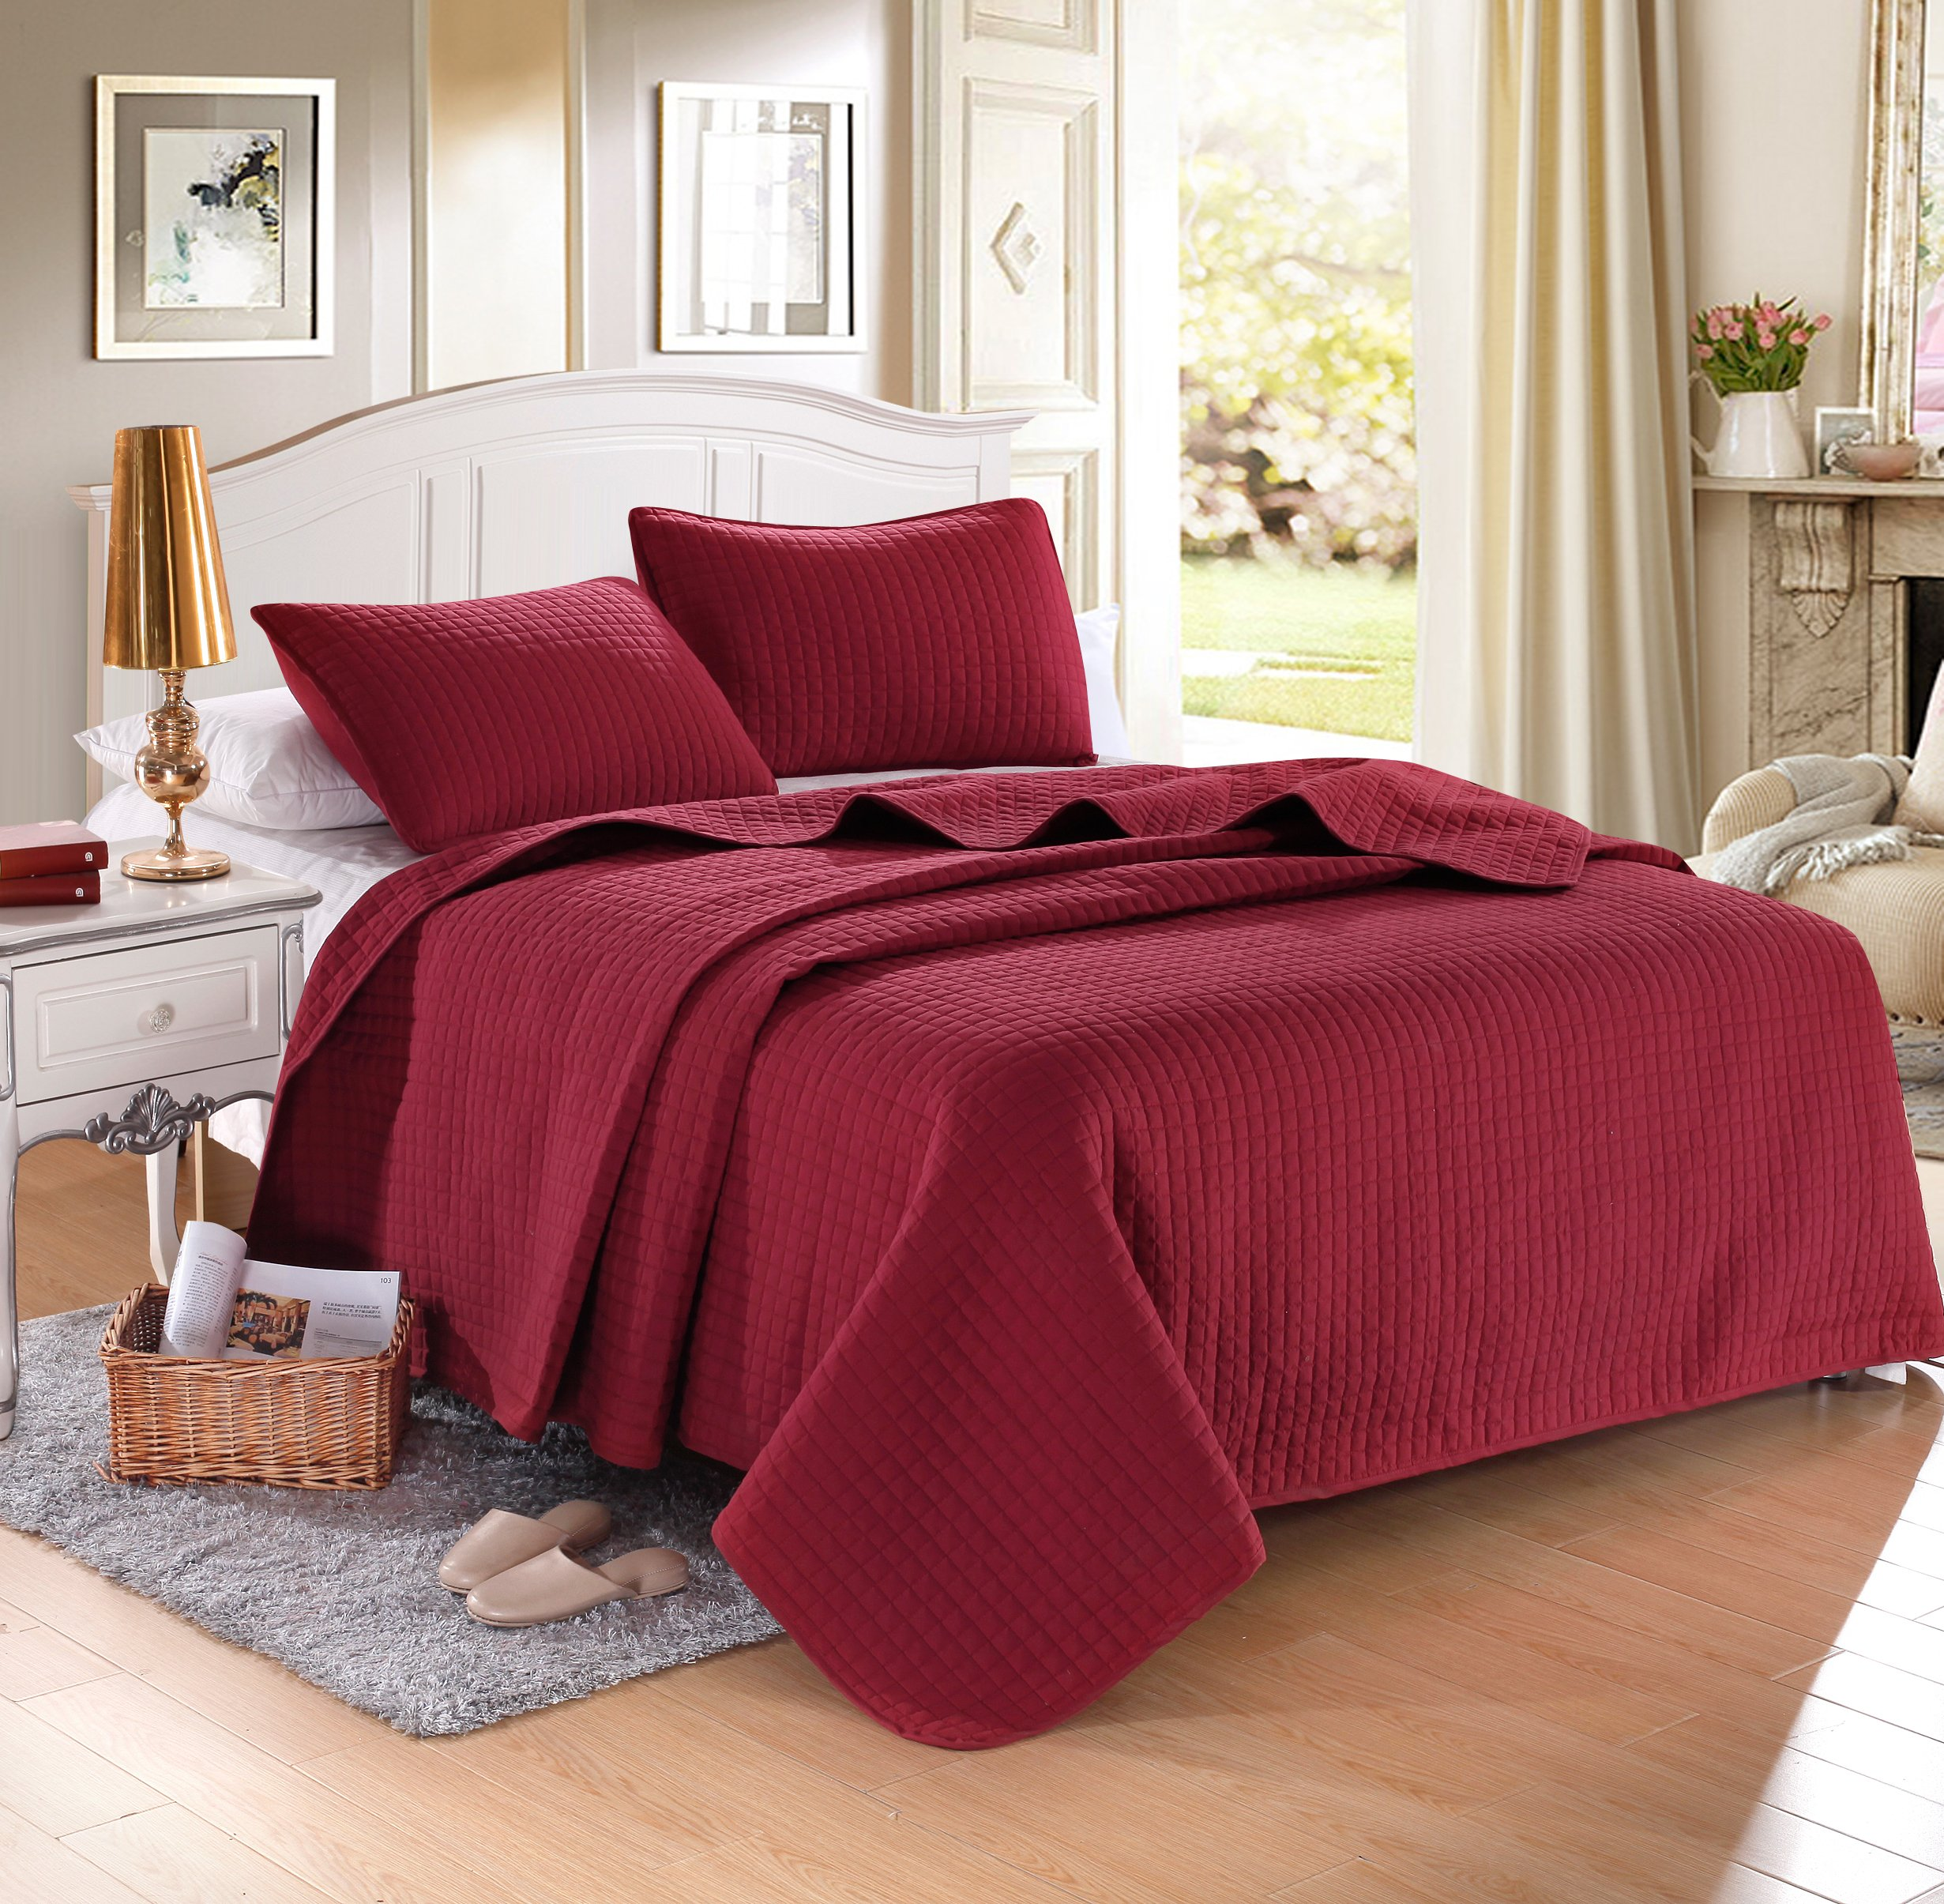 """QUEEN BURGUNDY Solid color Quilted Bedspread Coverlet(90""""x102"""") +2 shams (20""""x26"""") Hypoallergenic Overfilled Bedcover for homes,hotels/motels, Airbnb, rentals polyester filling 120gsm-5.11lbs"""